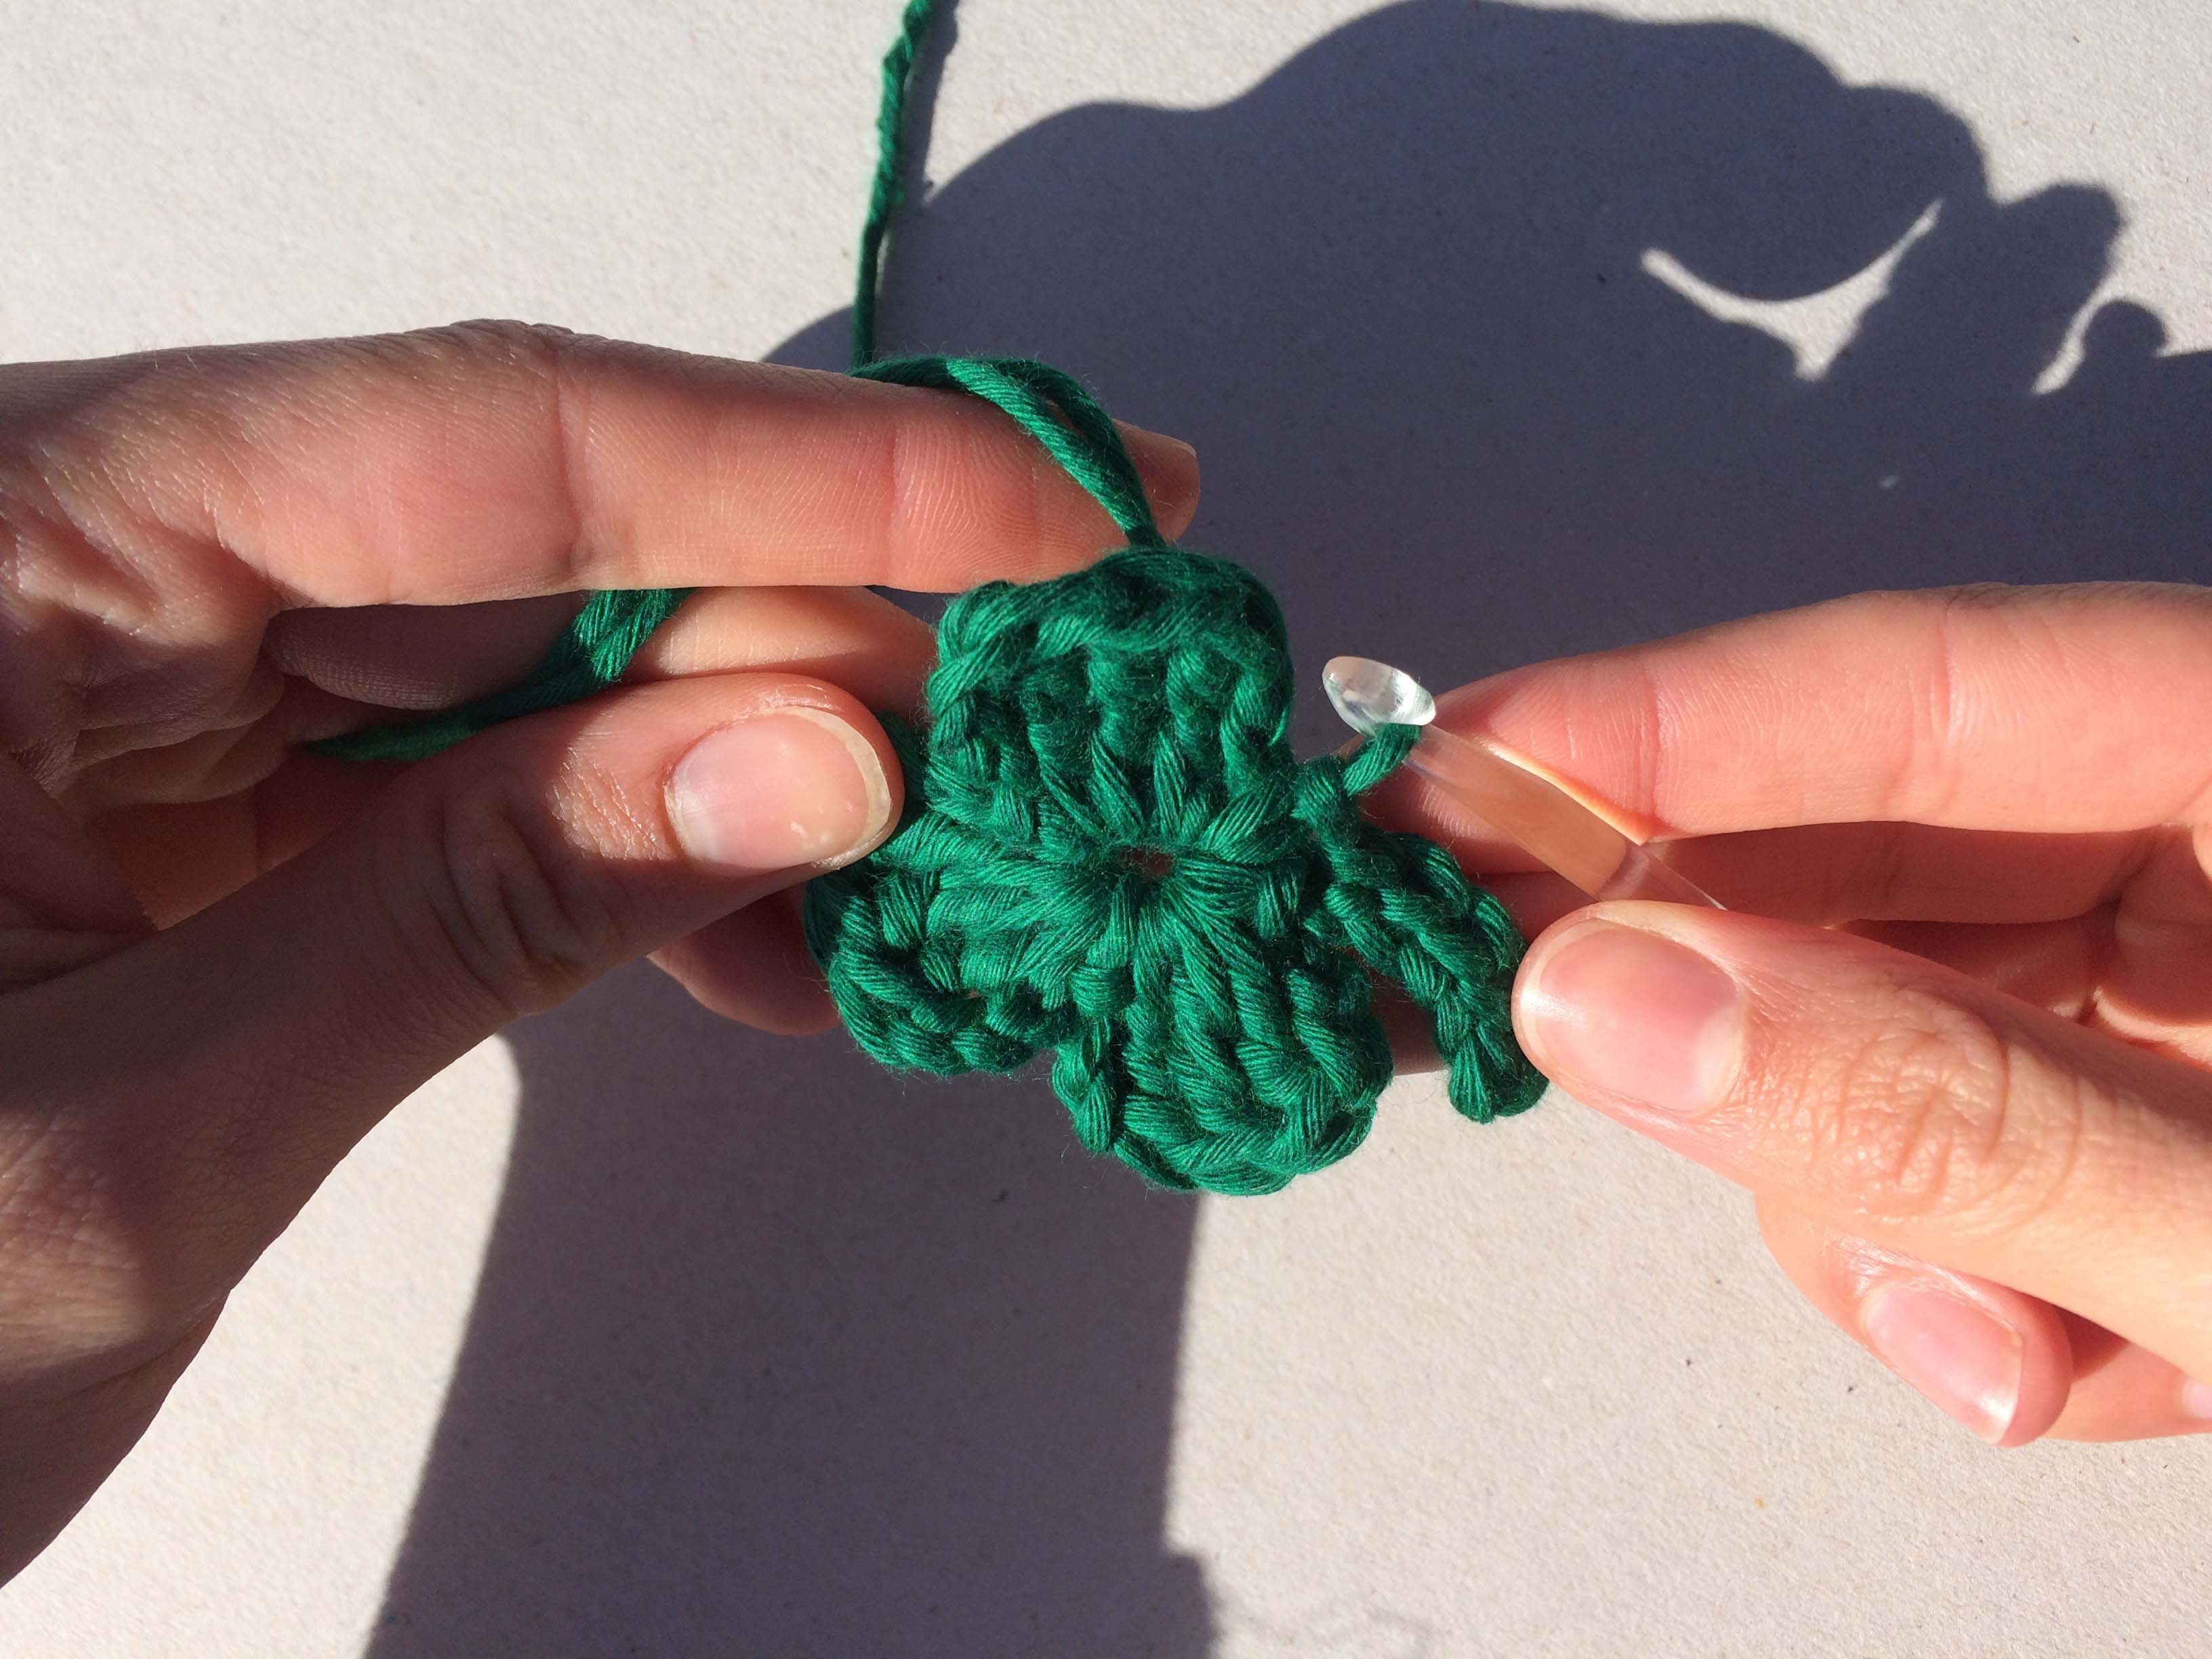 Crochet project for St Patrick's Day